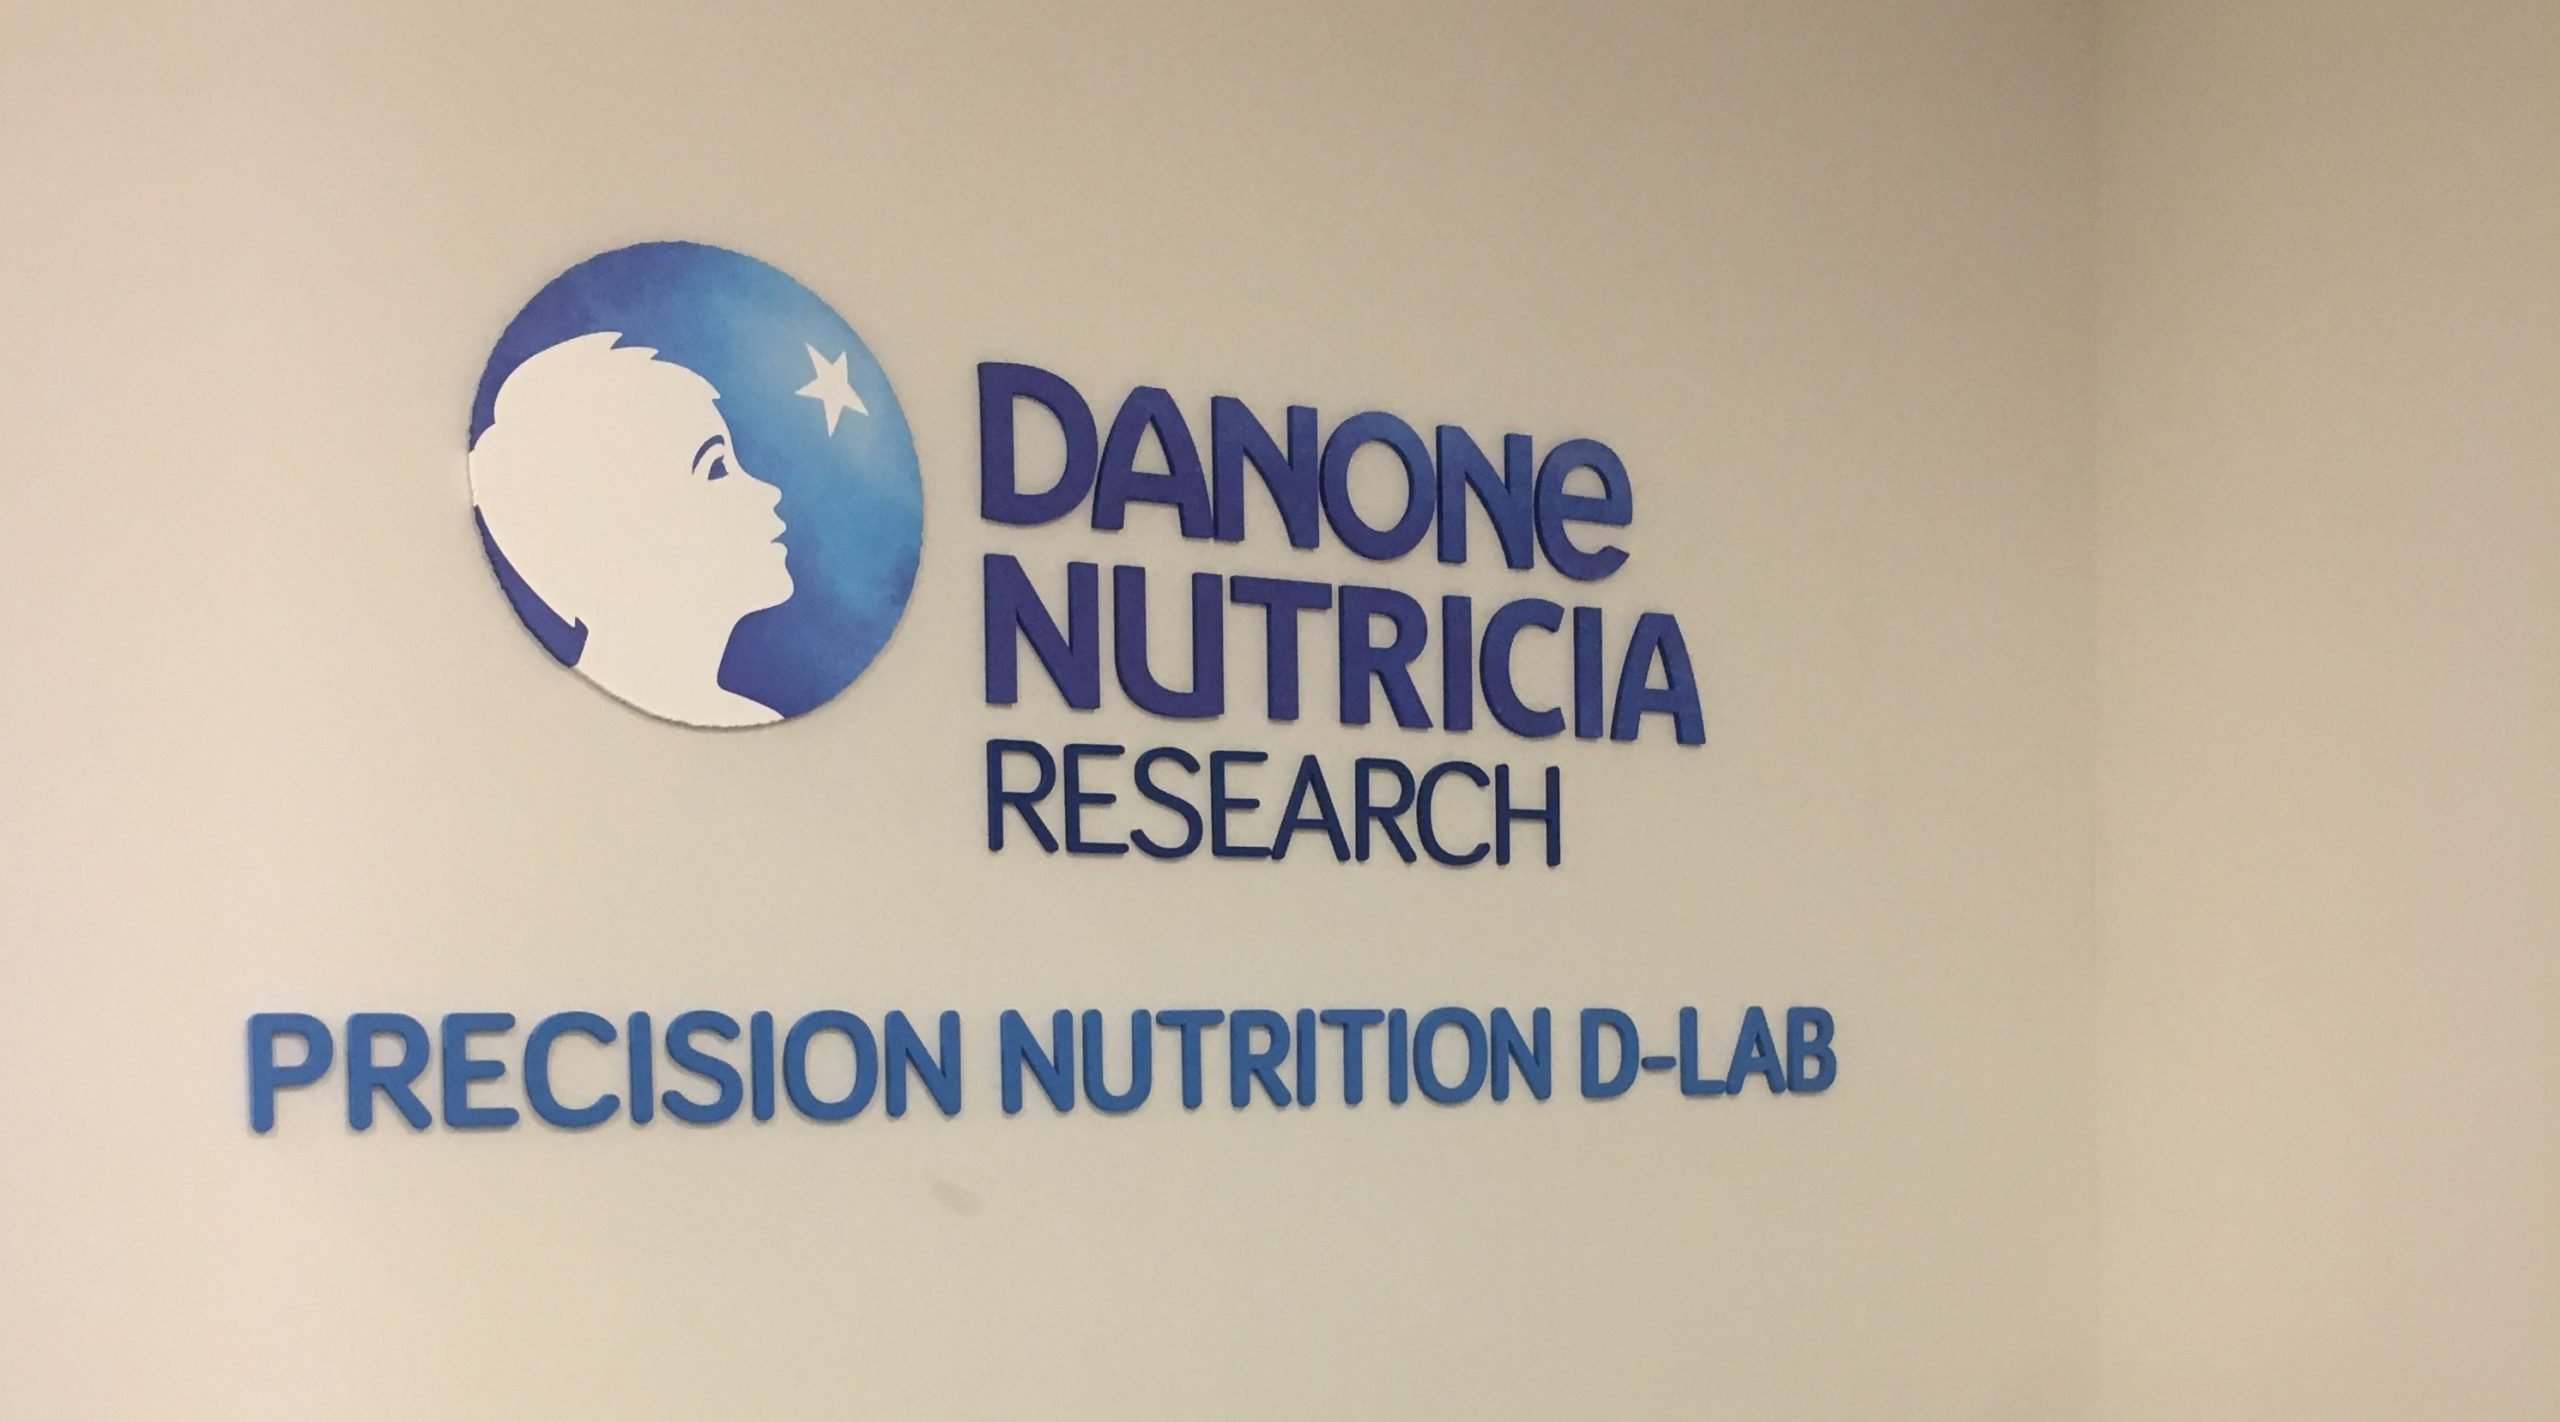 Precision Nutrition D Lab 2